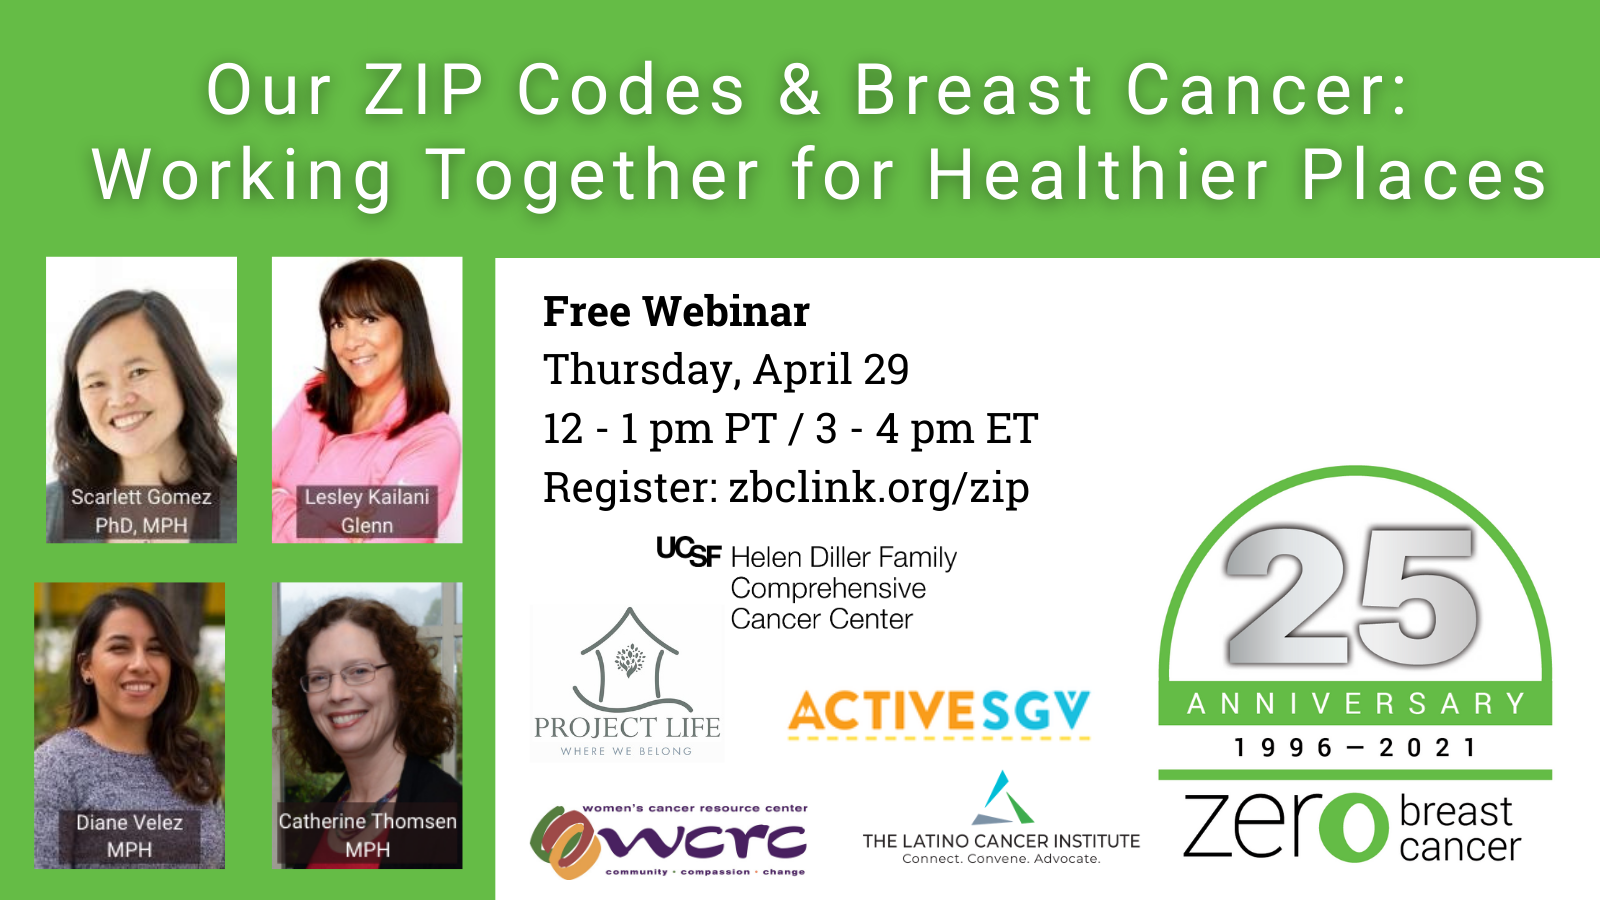 Our ZIP Codes and Breast Cancer: Working Together for Healthier Places